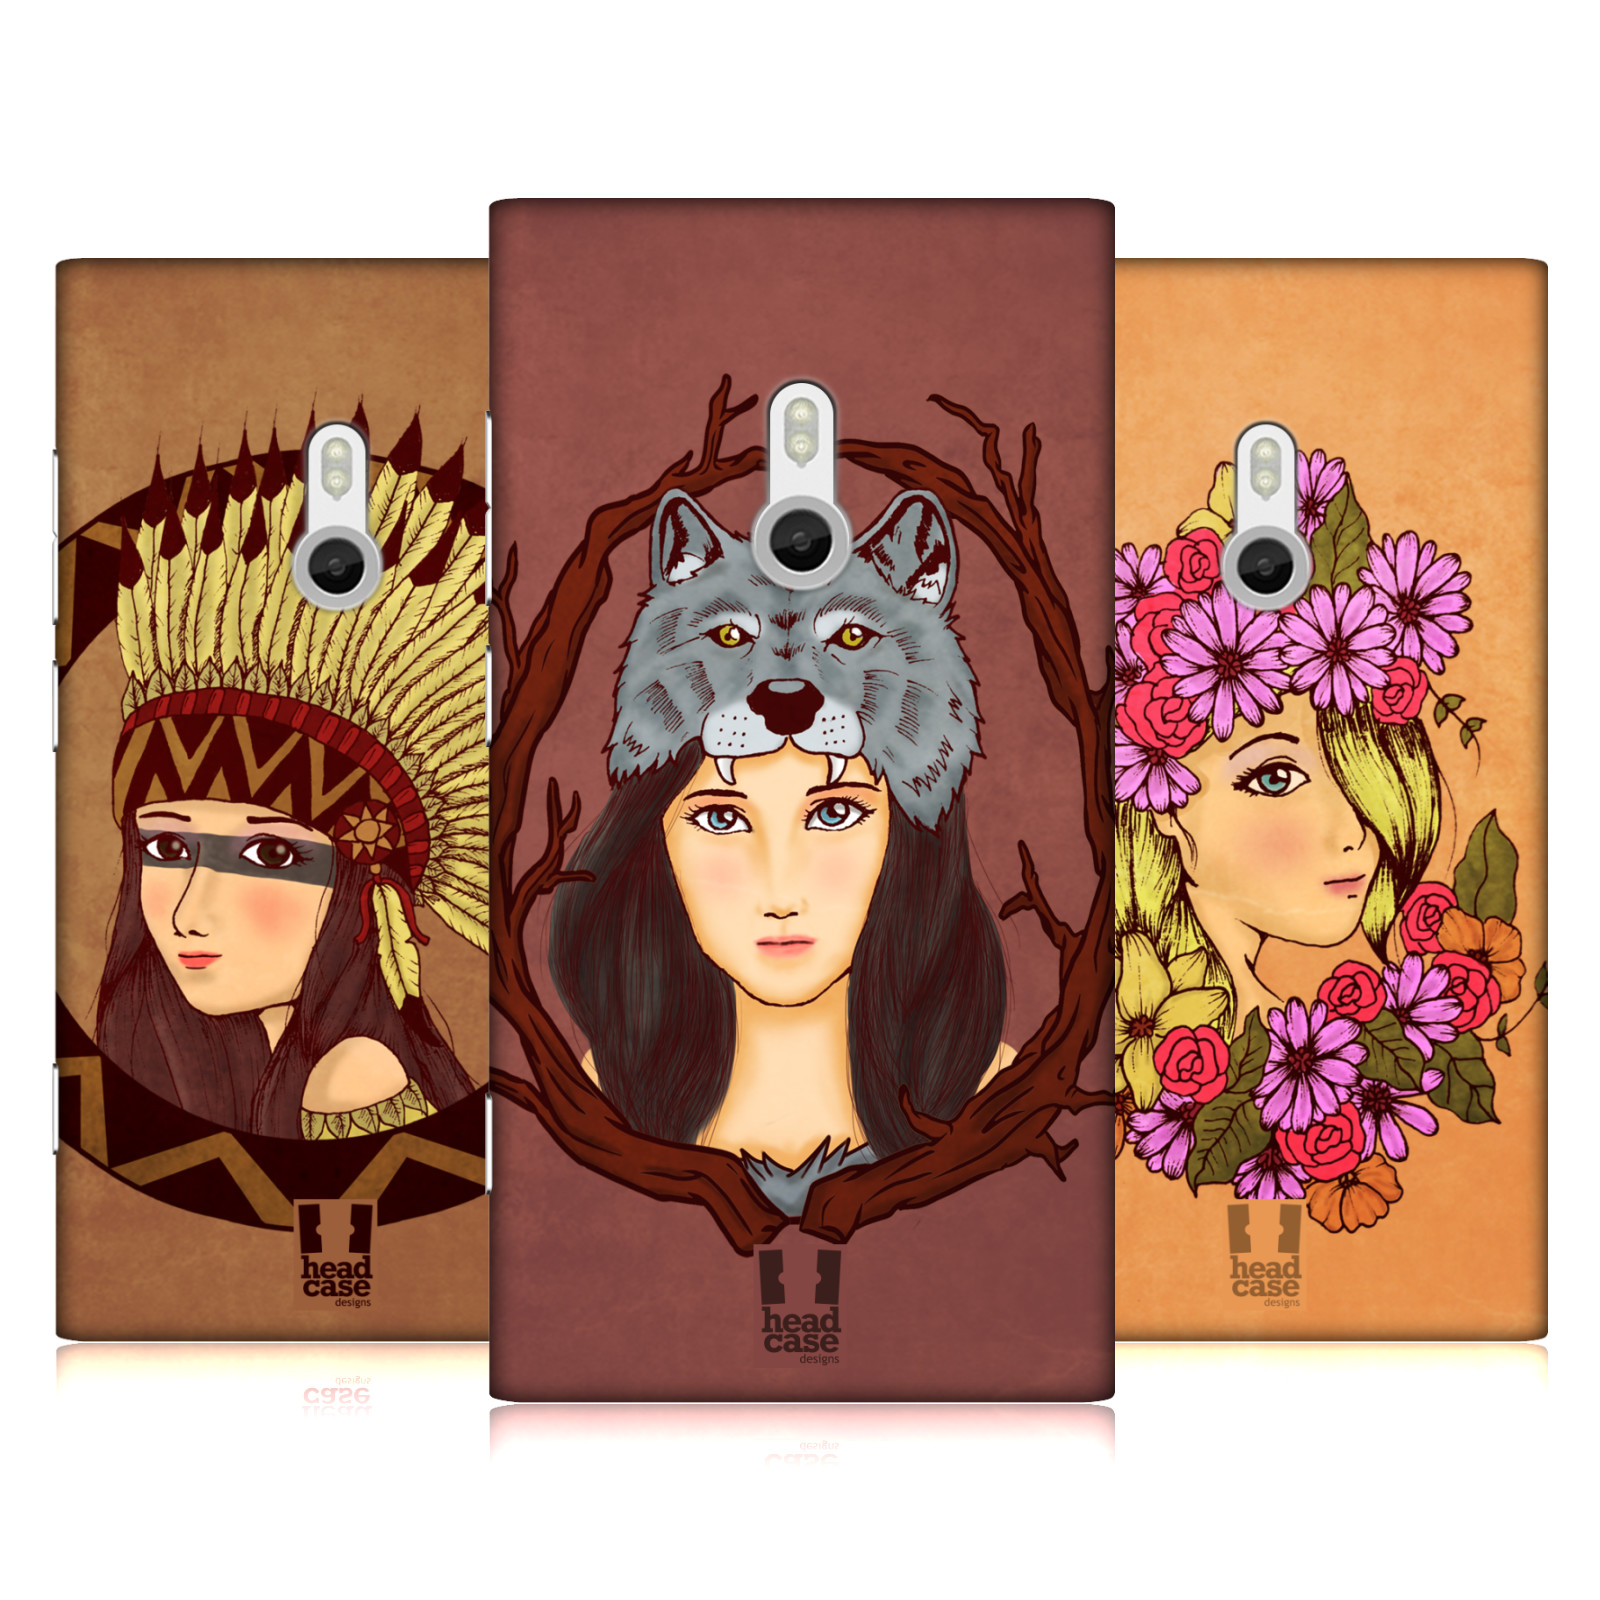 HEAD-CASE-DESIGNS-HEADDRESS-CHIC-HARD-BACK-CASE-FOR-NOKIA-PHONES-2